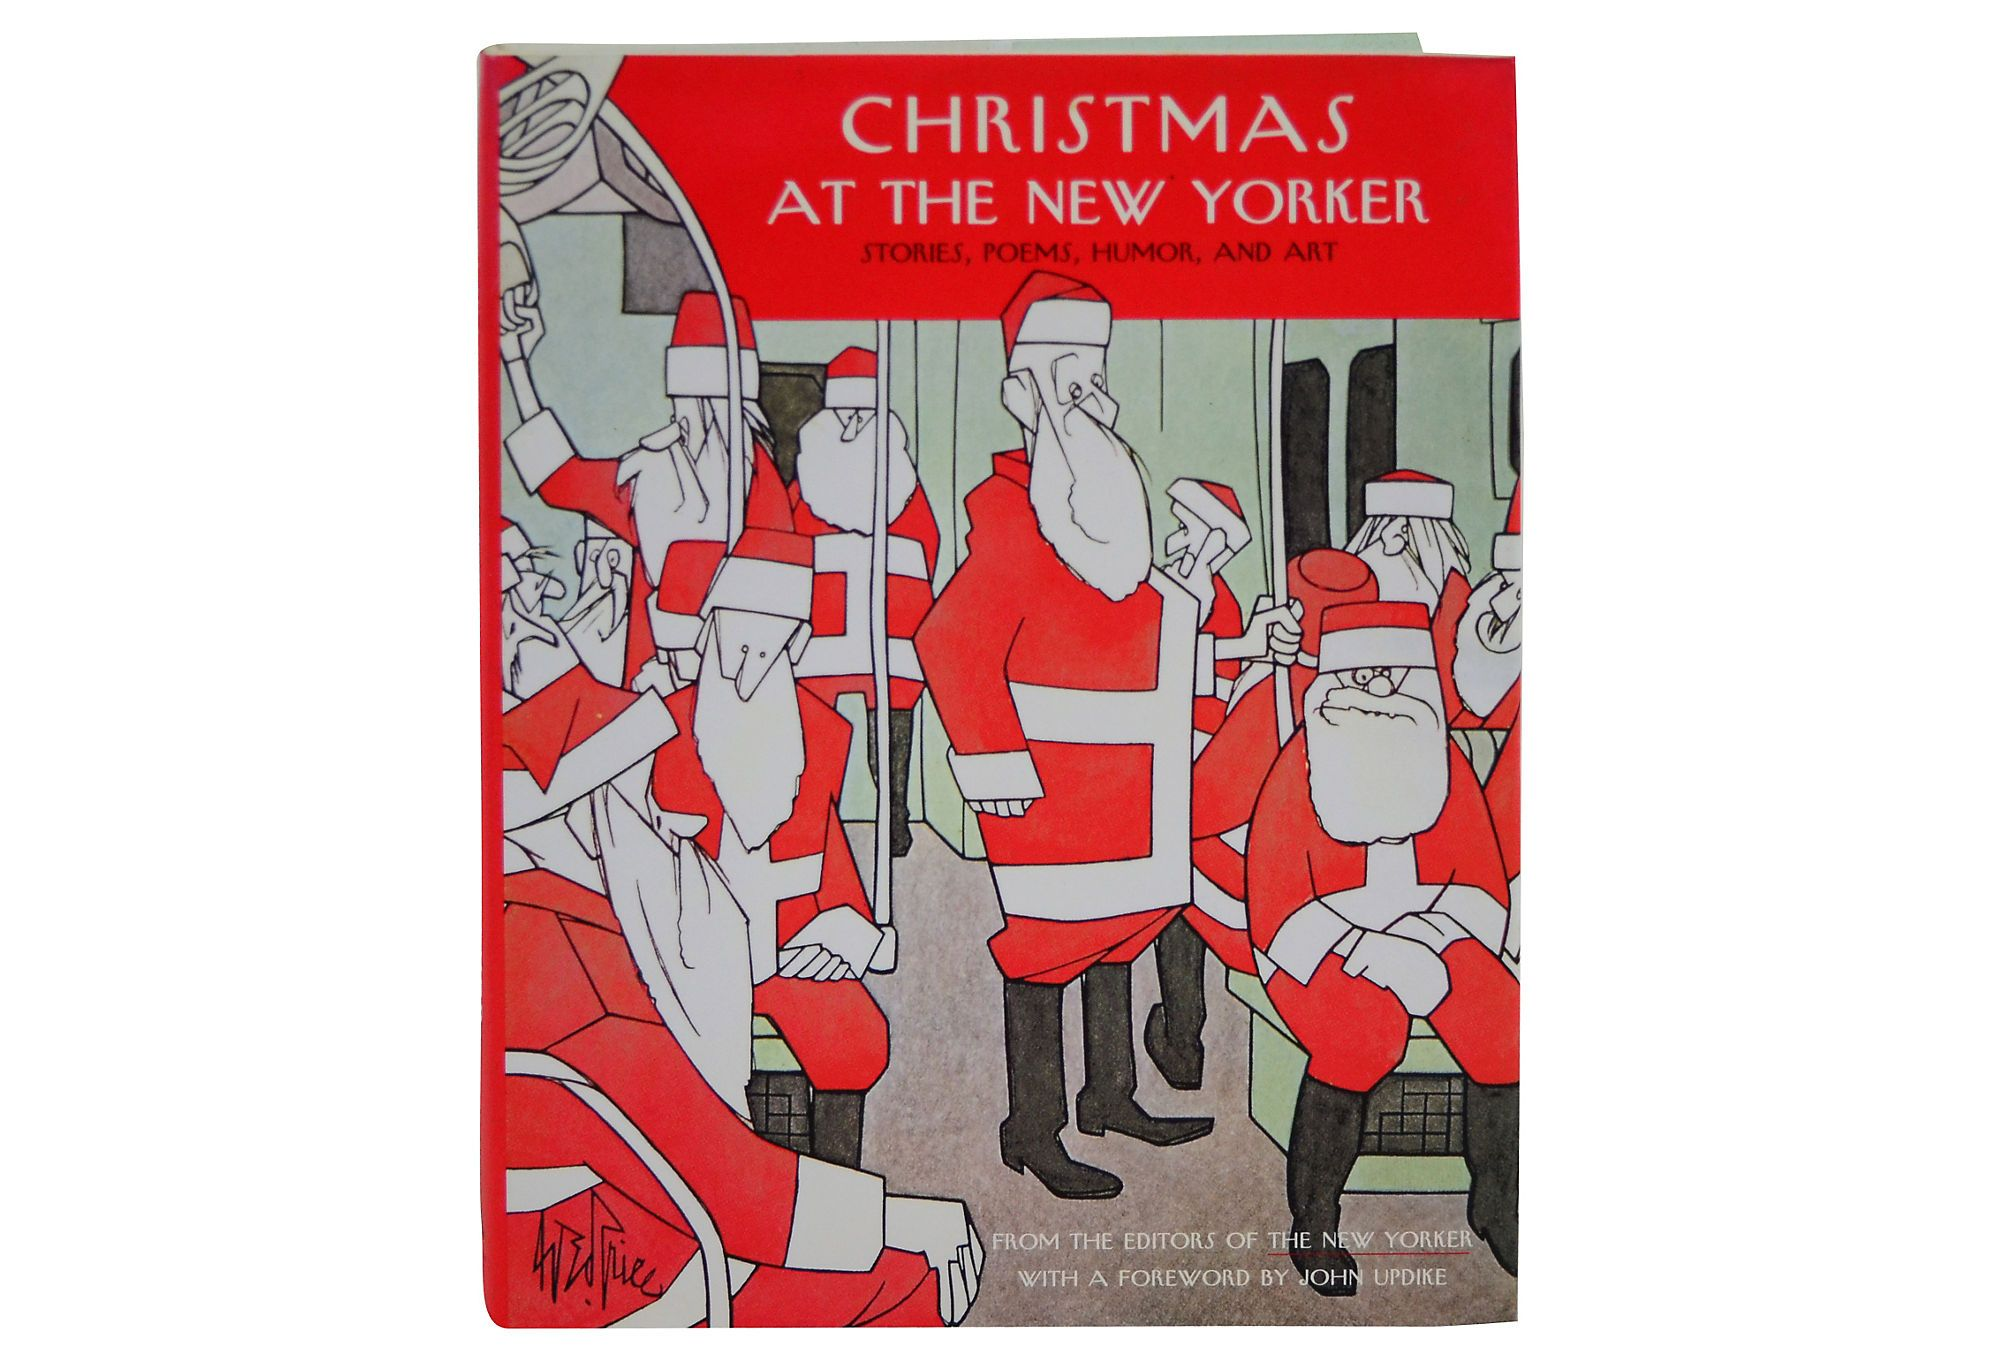 Christmas At The New Yorker Stories Poems Humor And Art From The Editors Of The New Yorker Foreword By Joh New Yorker Covers The New Yorker Magazine Cover